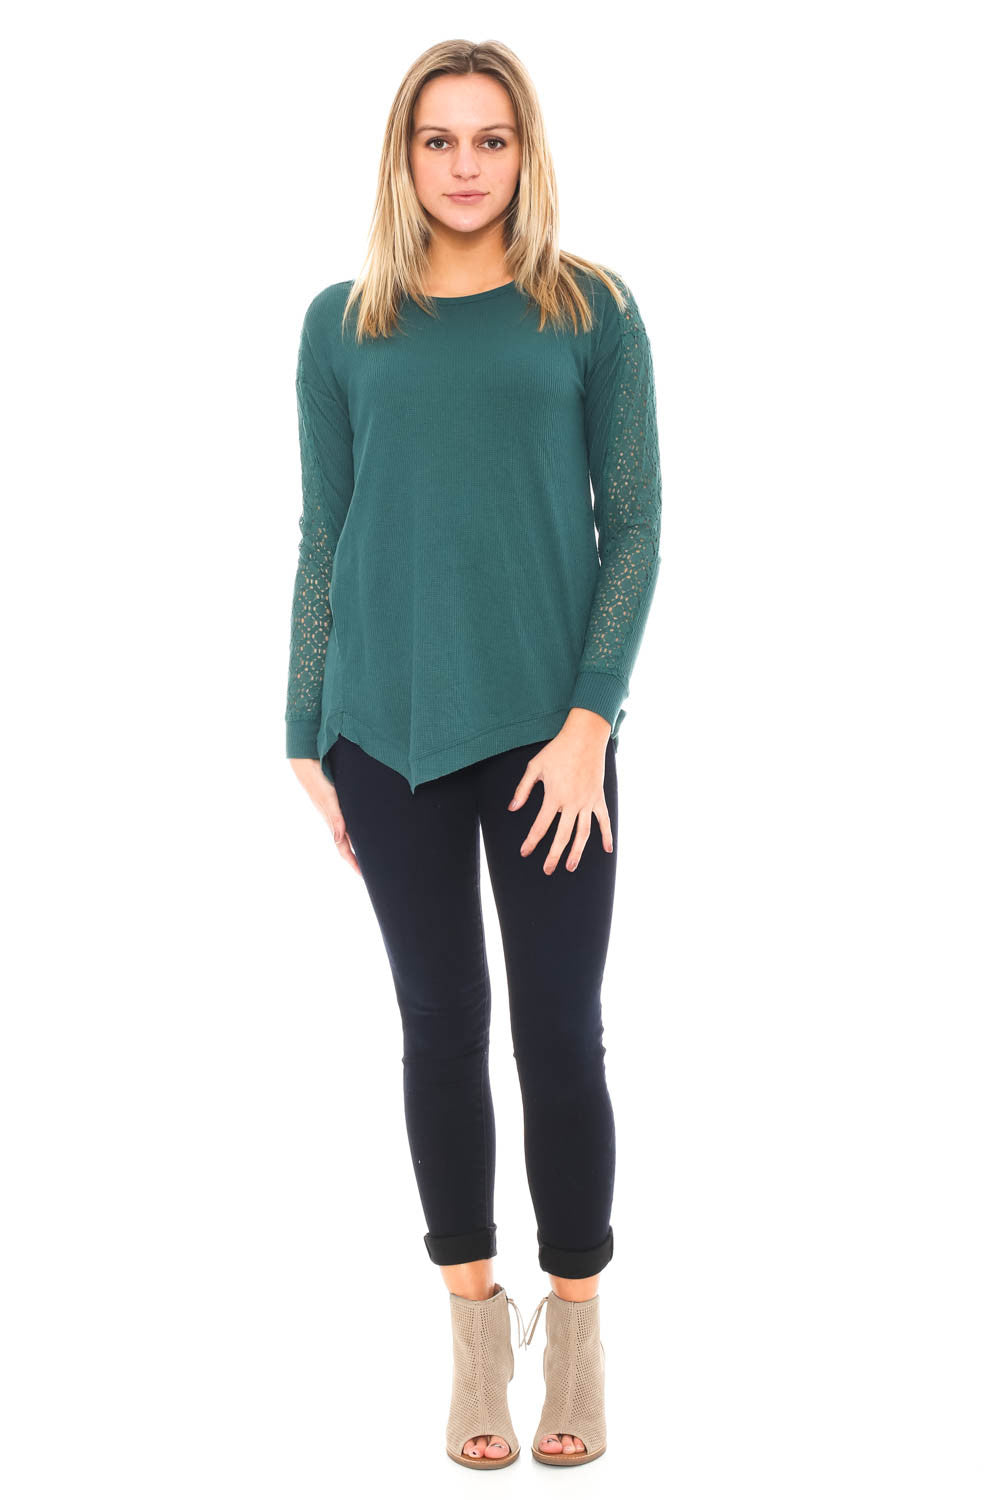 Blouse - Waffle Knit Top with Lace Arm Detail By Democracy